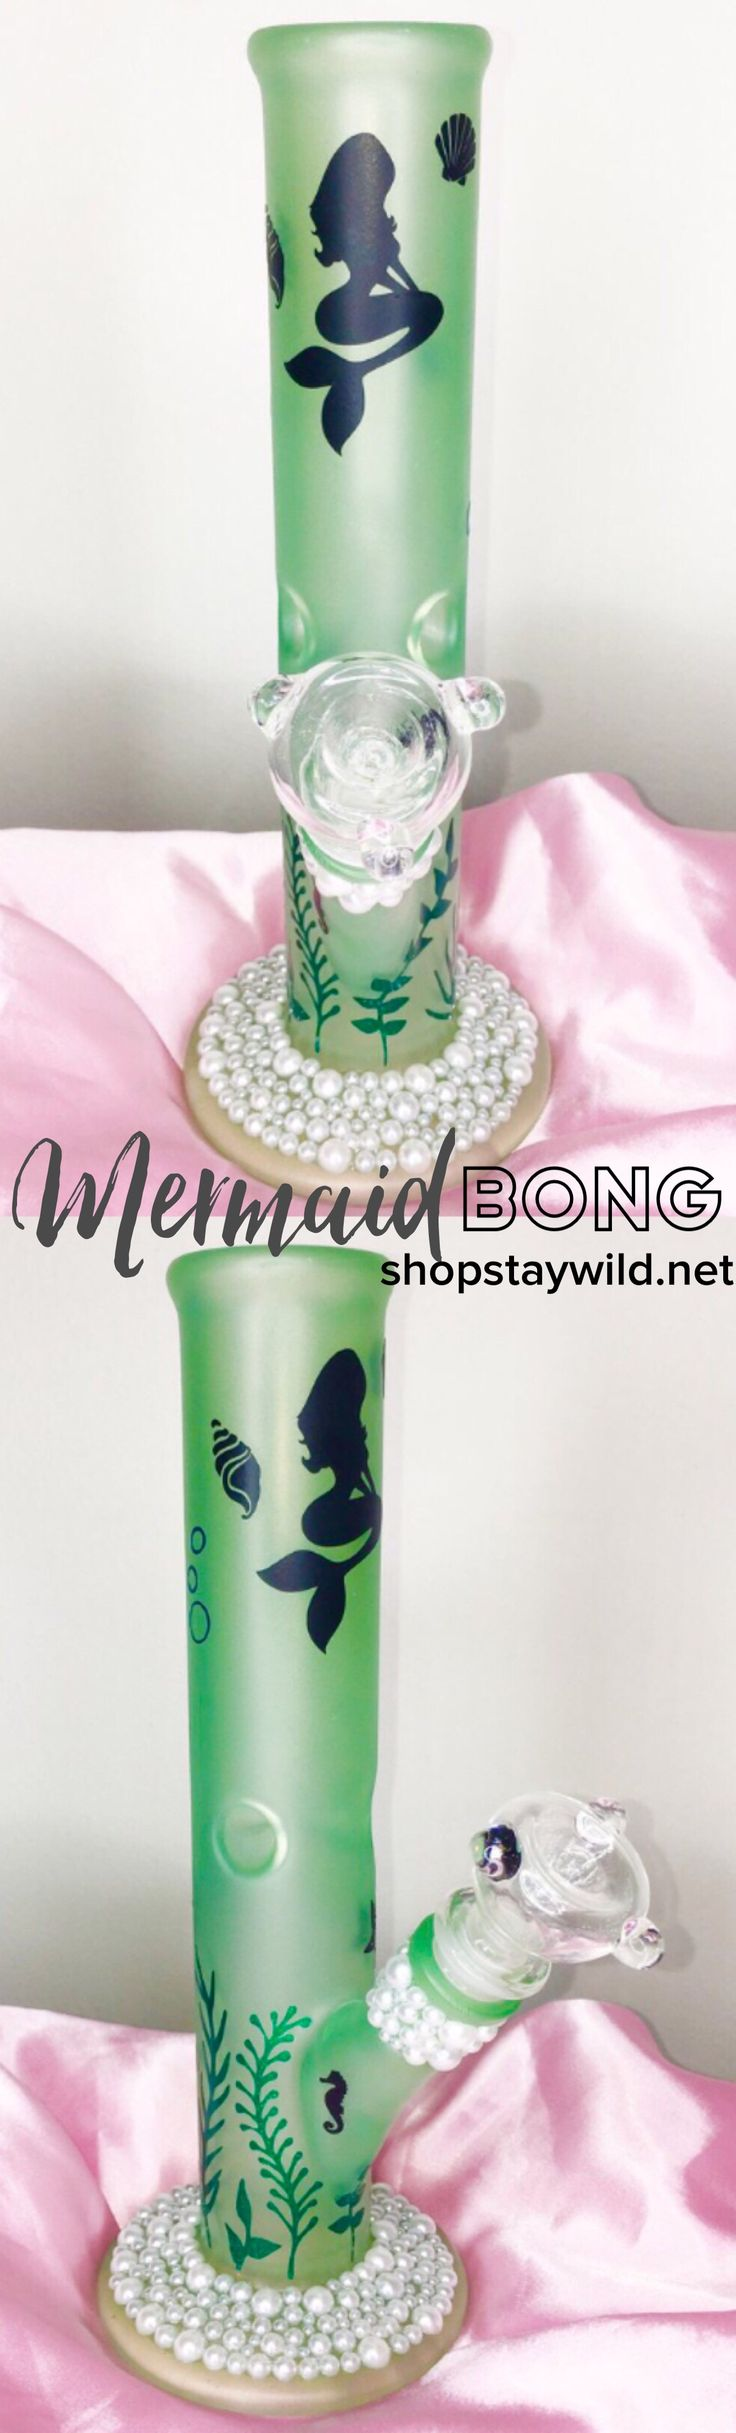 The mermaid bong is the color of sea glass and bedazzled with pearls. ✨ Girly, feminine bongs and pipes for women at www.shopstaywild.net women love weed too! Beautiful cannabis accessories like grinders, stash jars, rolling papers, bubblers and hemp bod